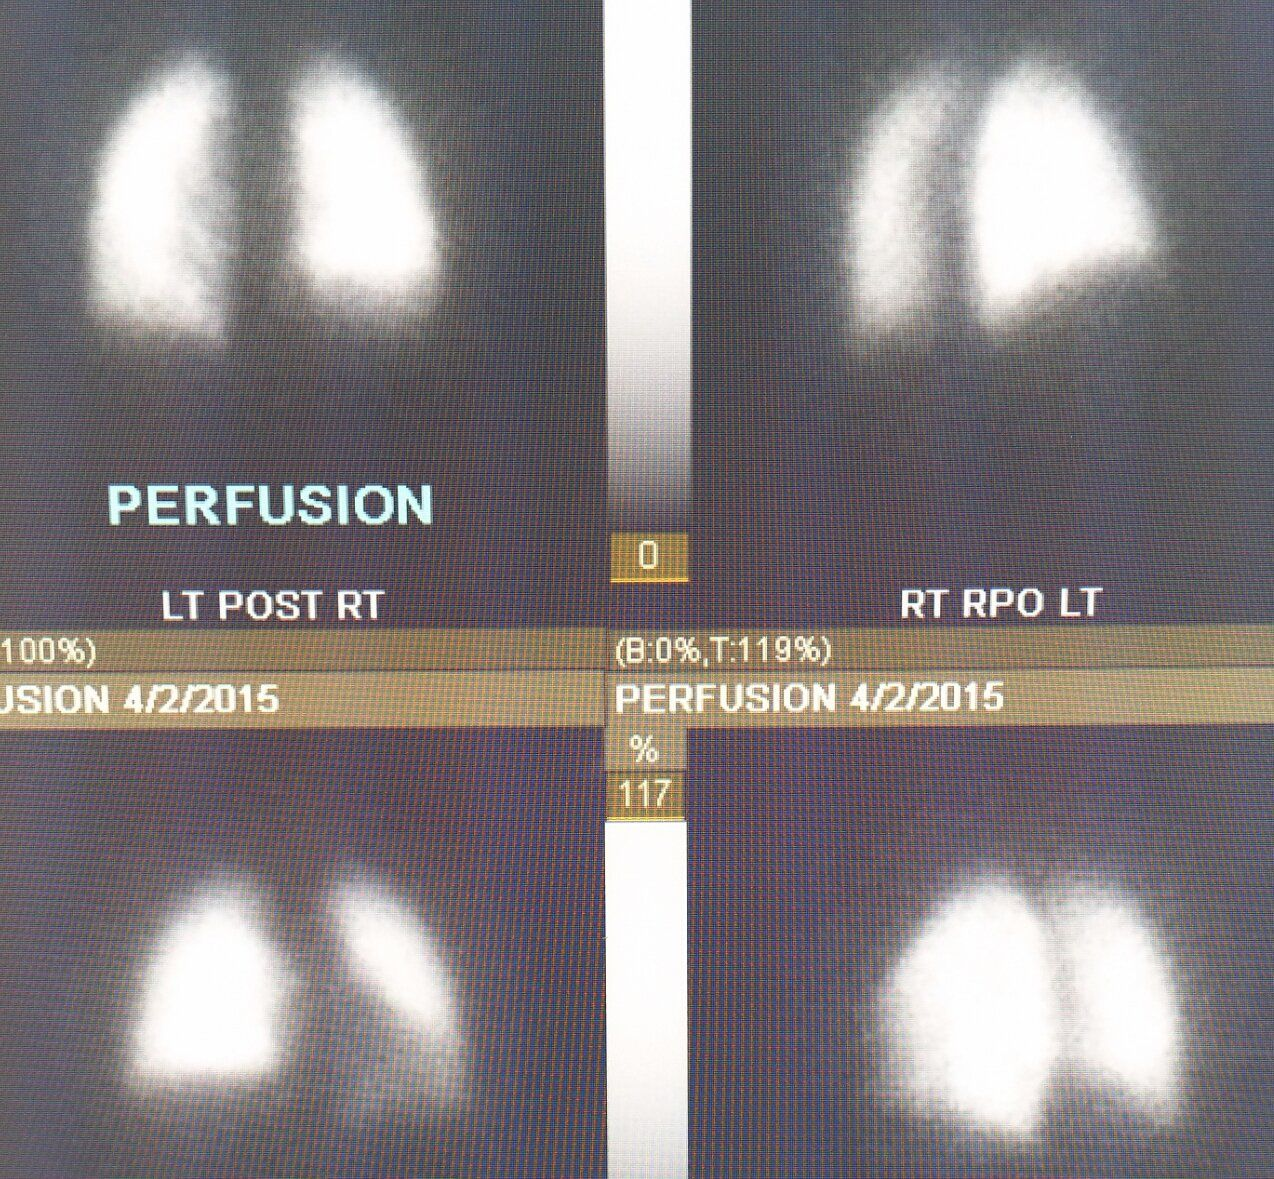 Nuclear #medicine, #V/Q #scan uses #radioactive #isotopes to